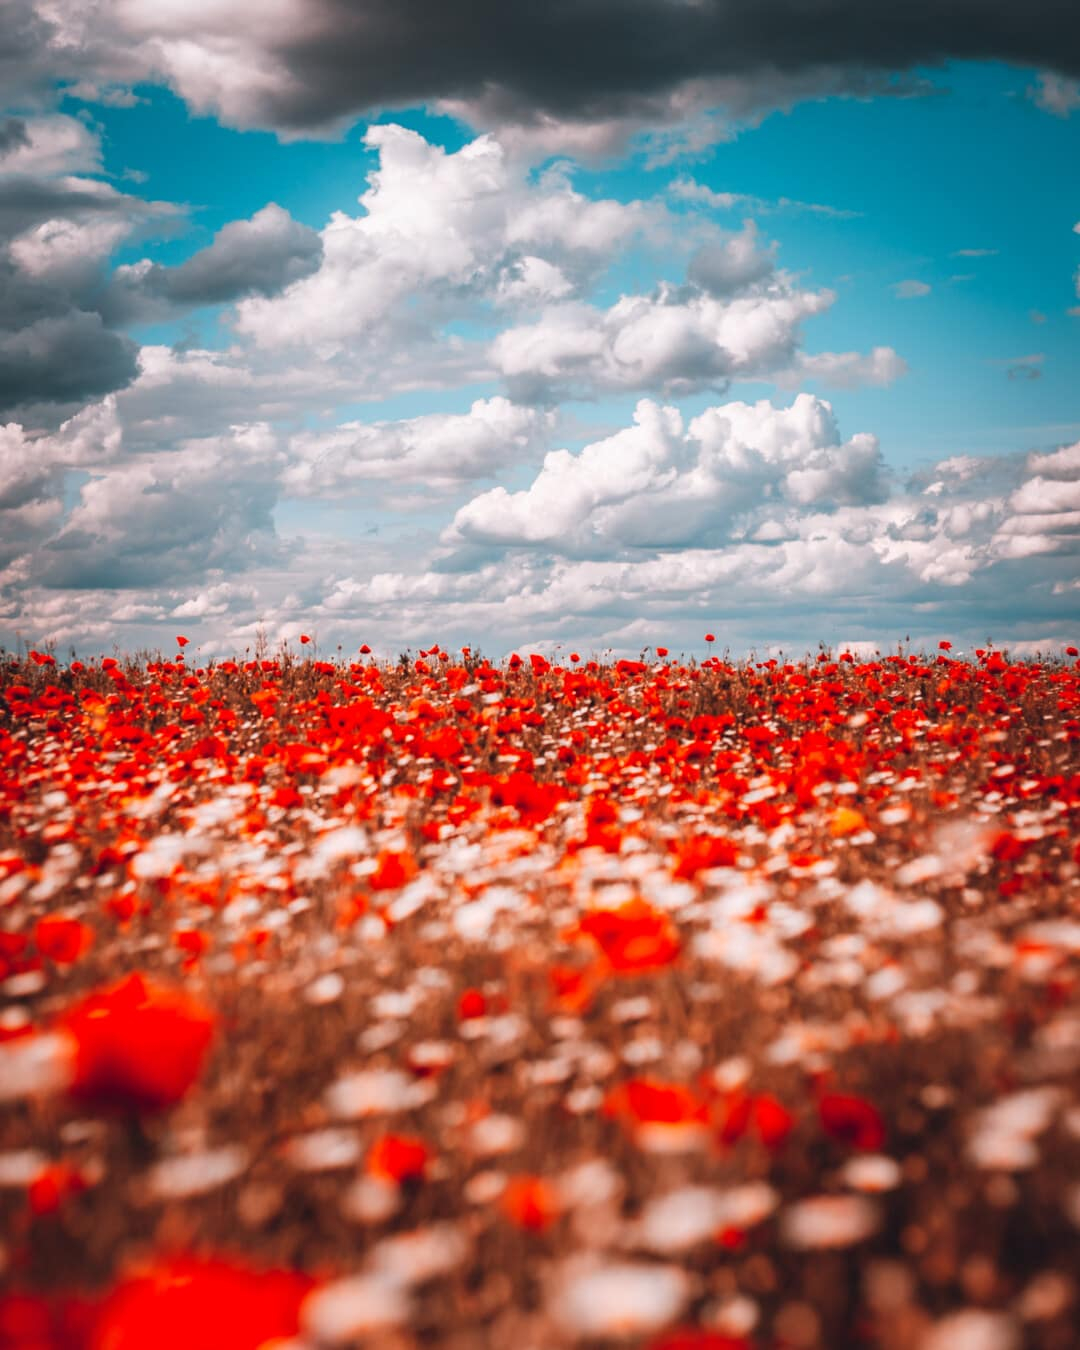 majestic, poppy, agricultural, field, flowers, red, flower, shrub, nature, leaf